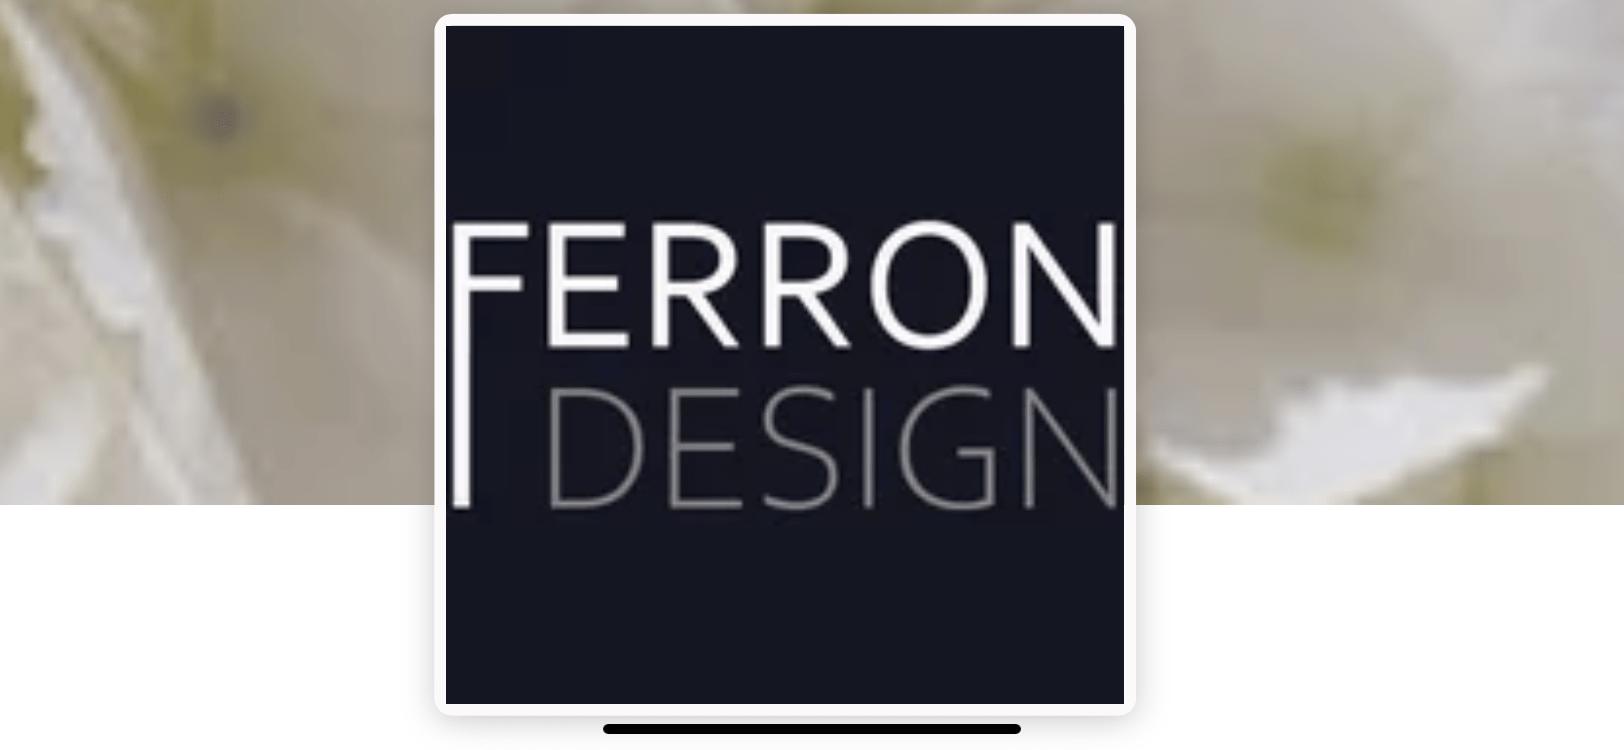 Ferron Design Studio logo - Business in Manotick